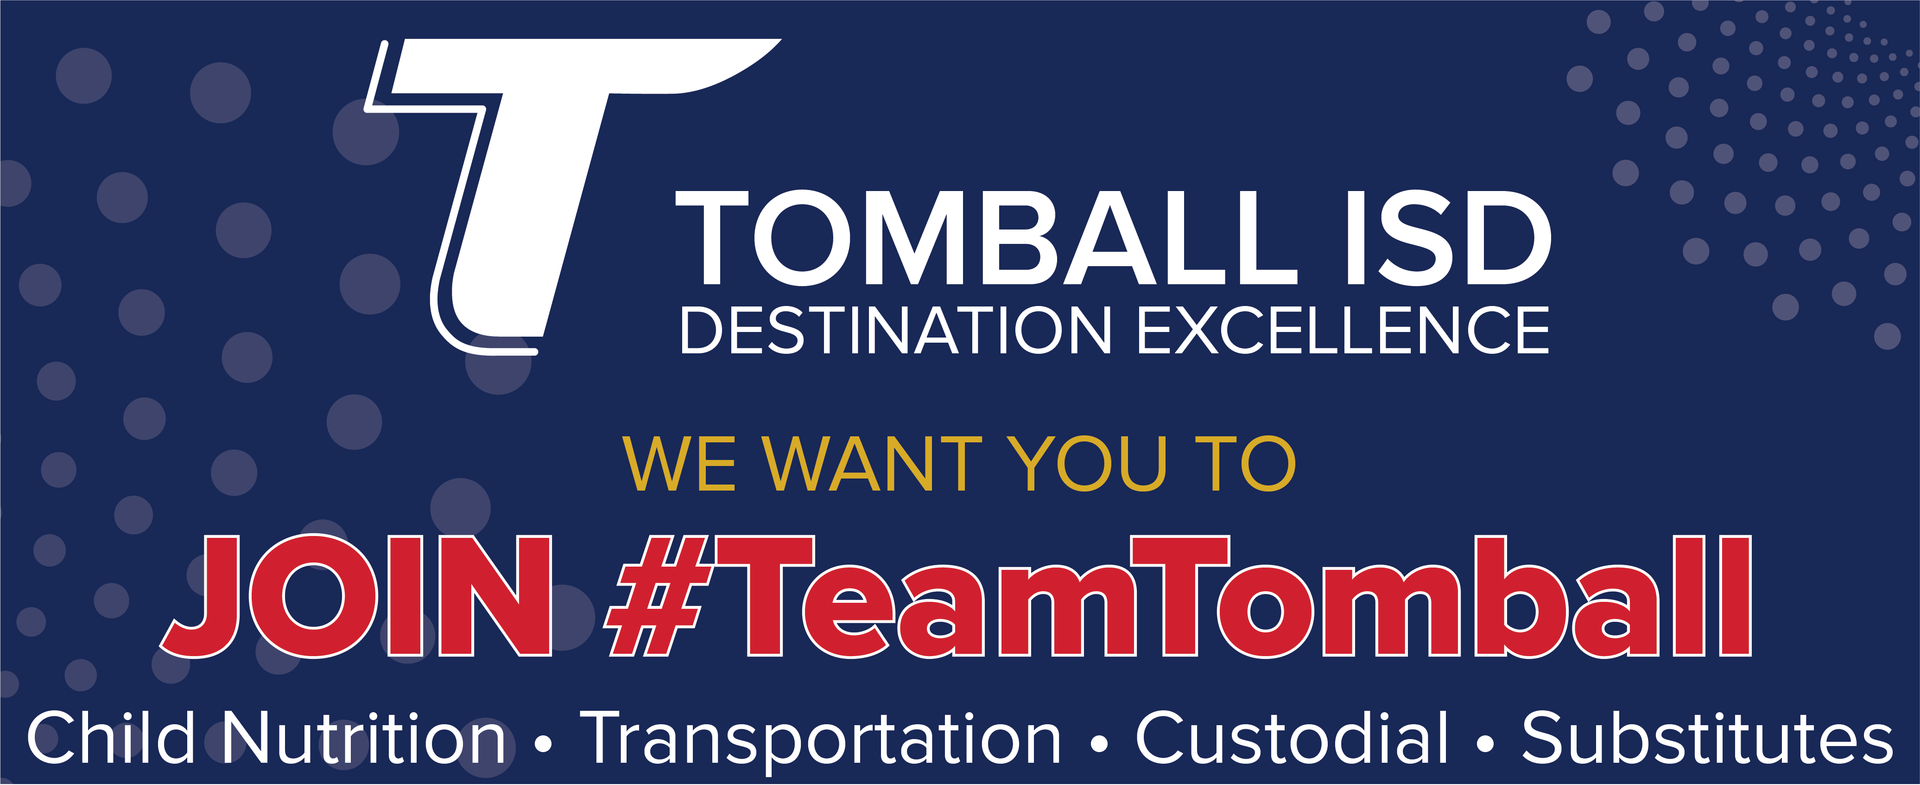 Tomball ISD we want you to join hashtag team tomball, child nutrition• transportation • custodial • substitutes